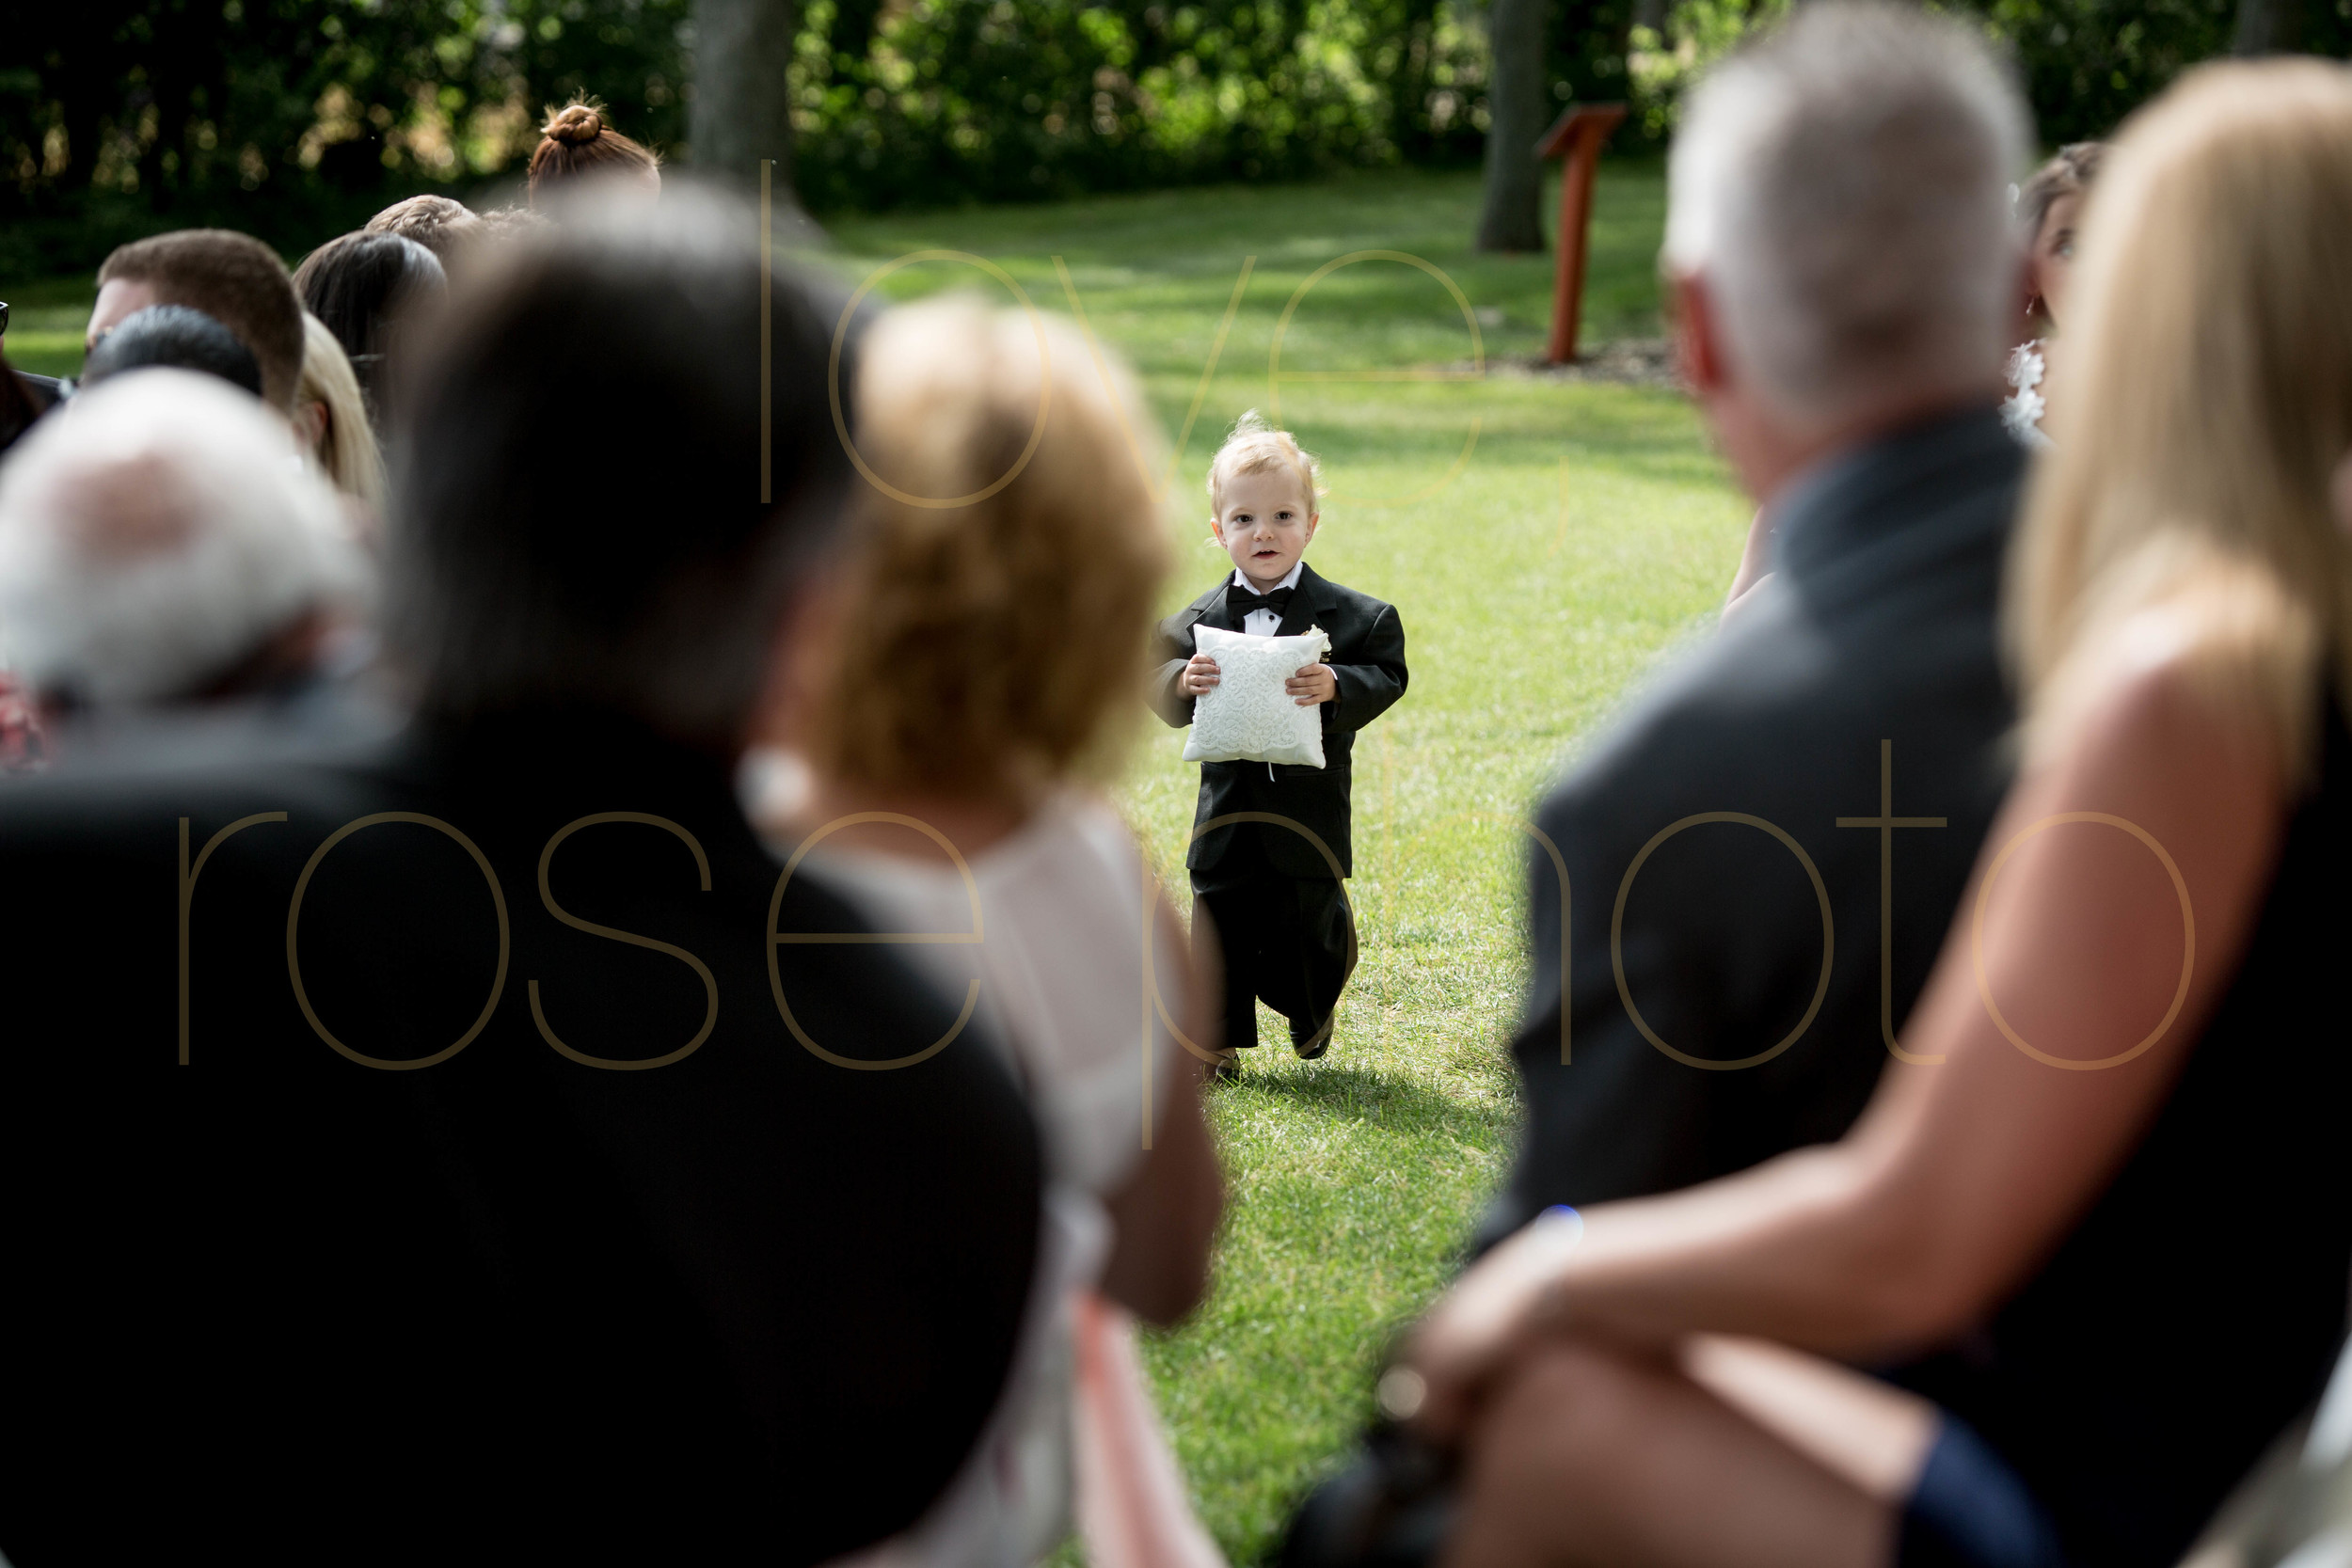 Claudia + Grant Heidel House Wiscon lake wedding best of chicago wedding photographers -15.jpg